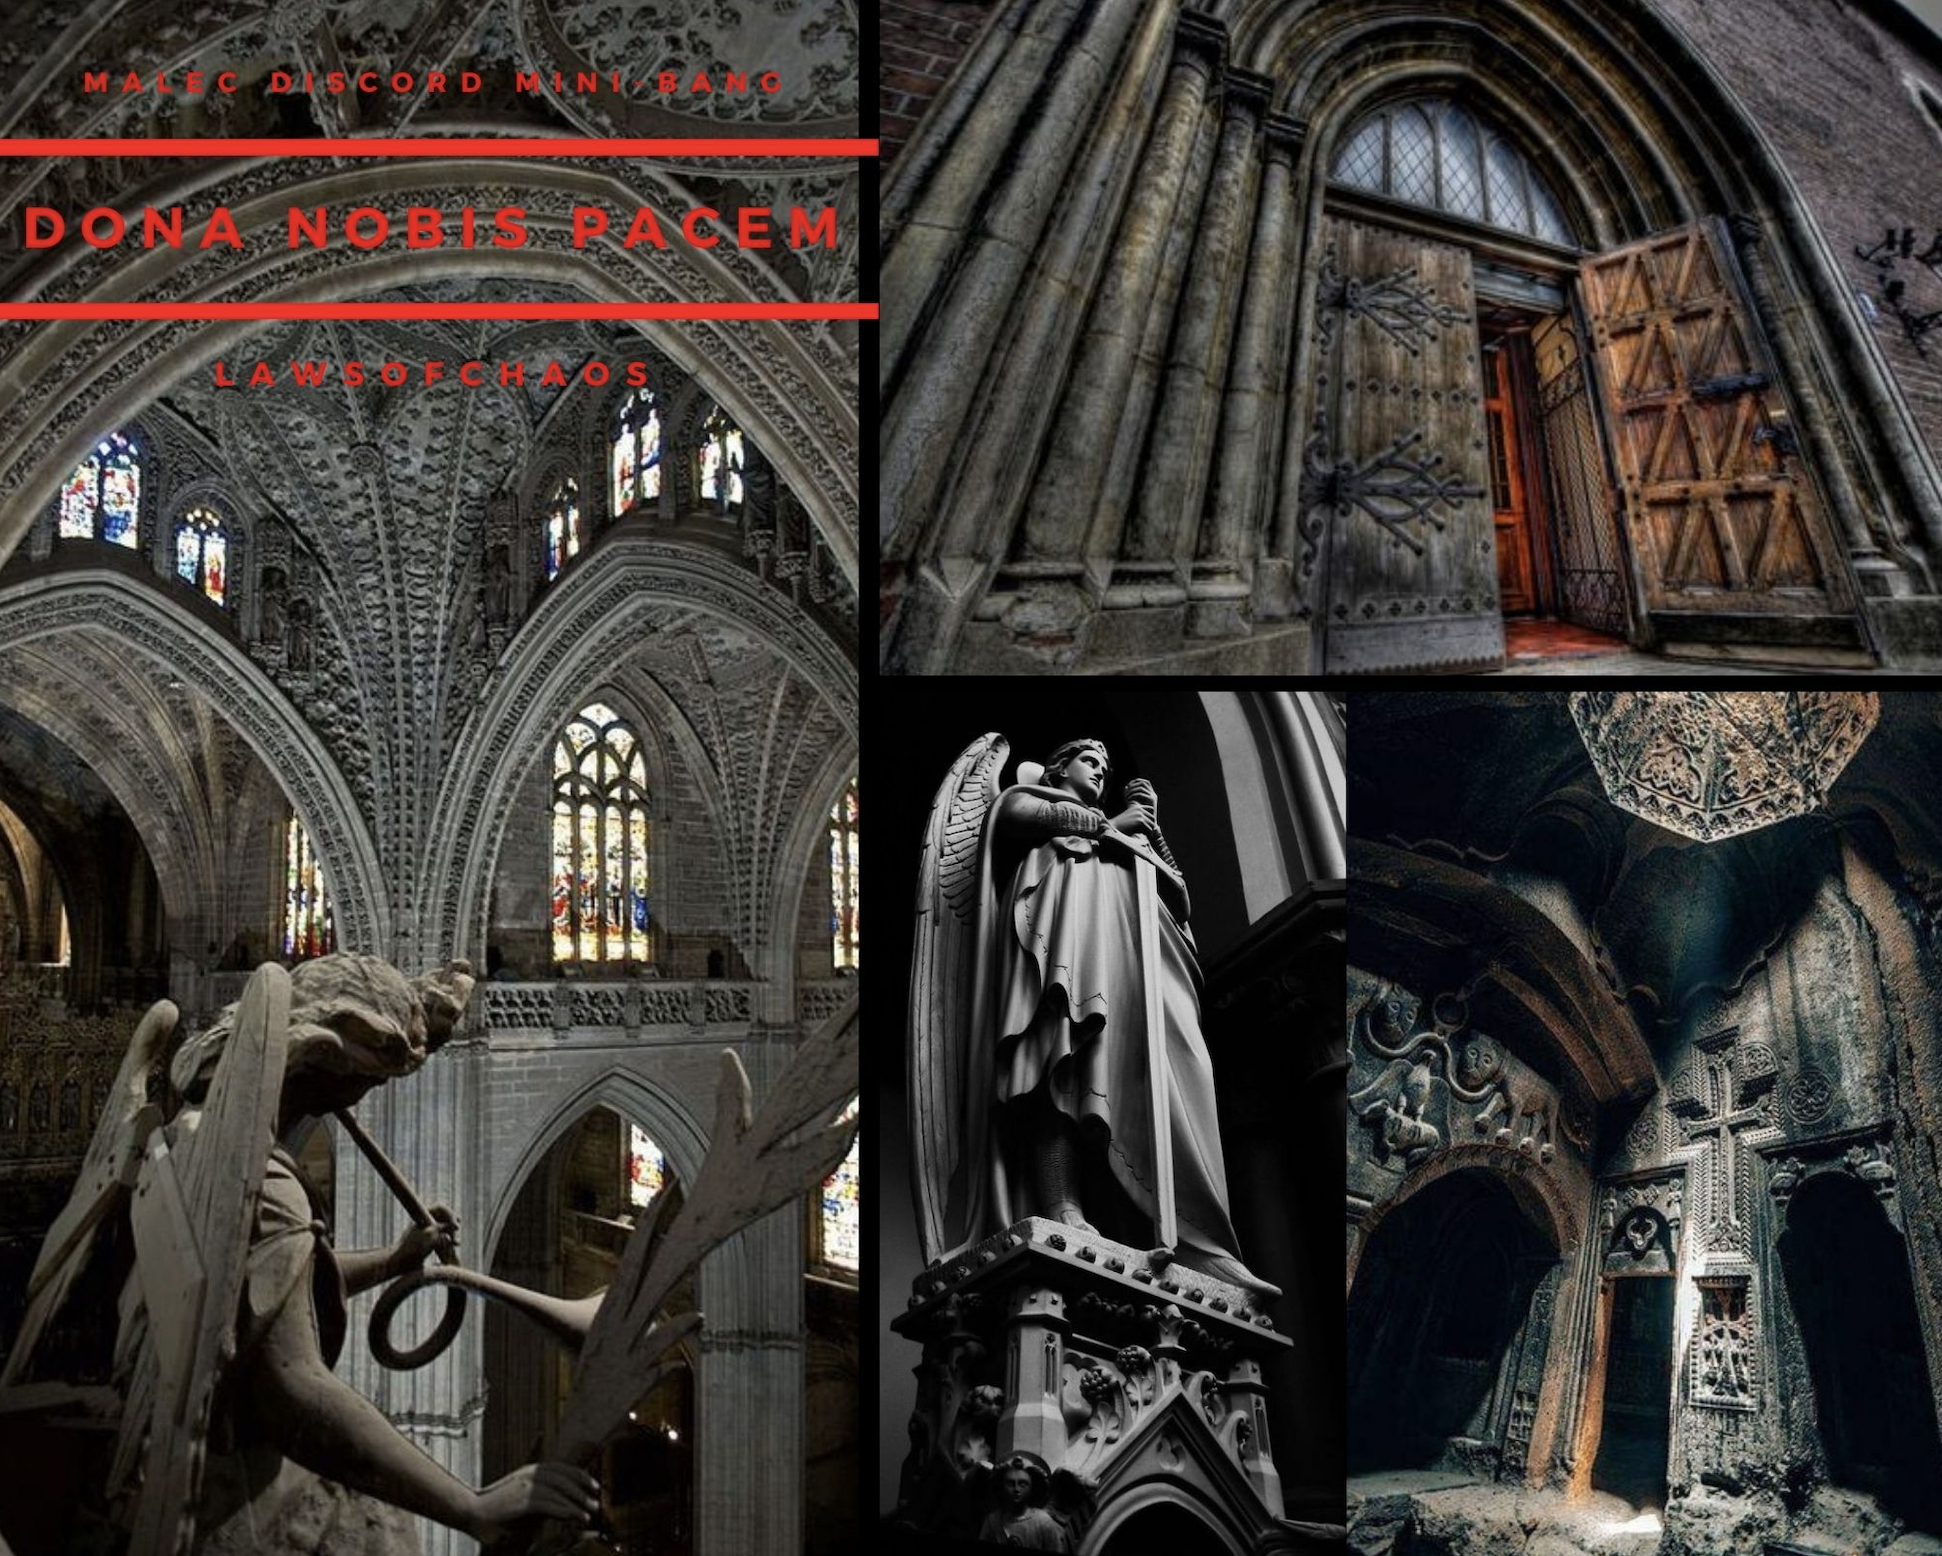 Title image for fic: dark cathedral aesthetic meant to convey the enormity of the scale of the building